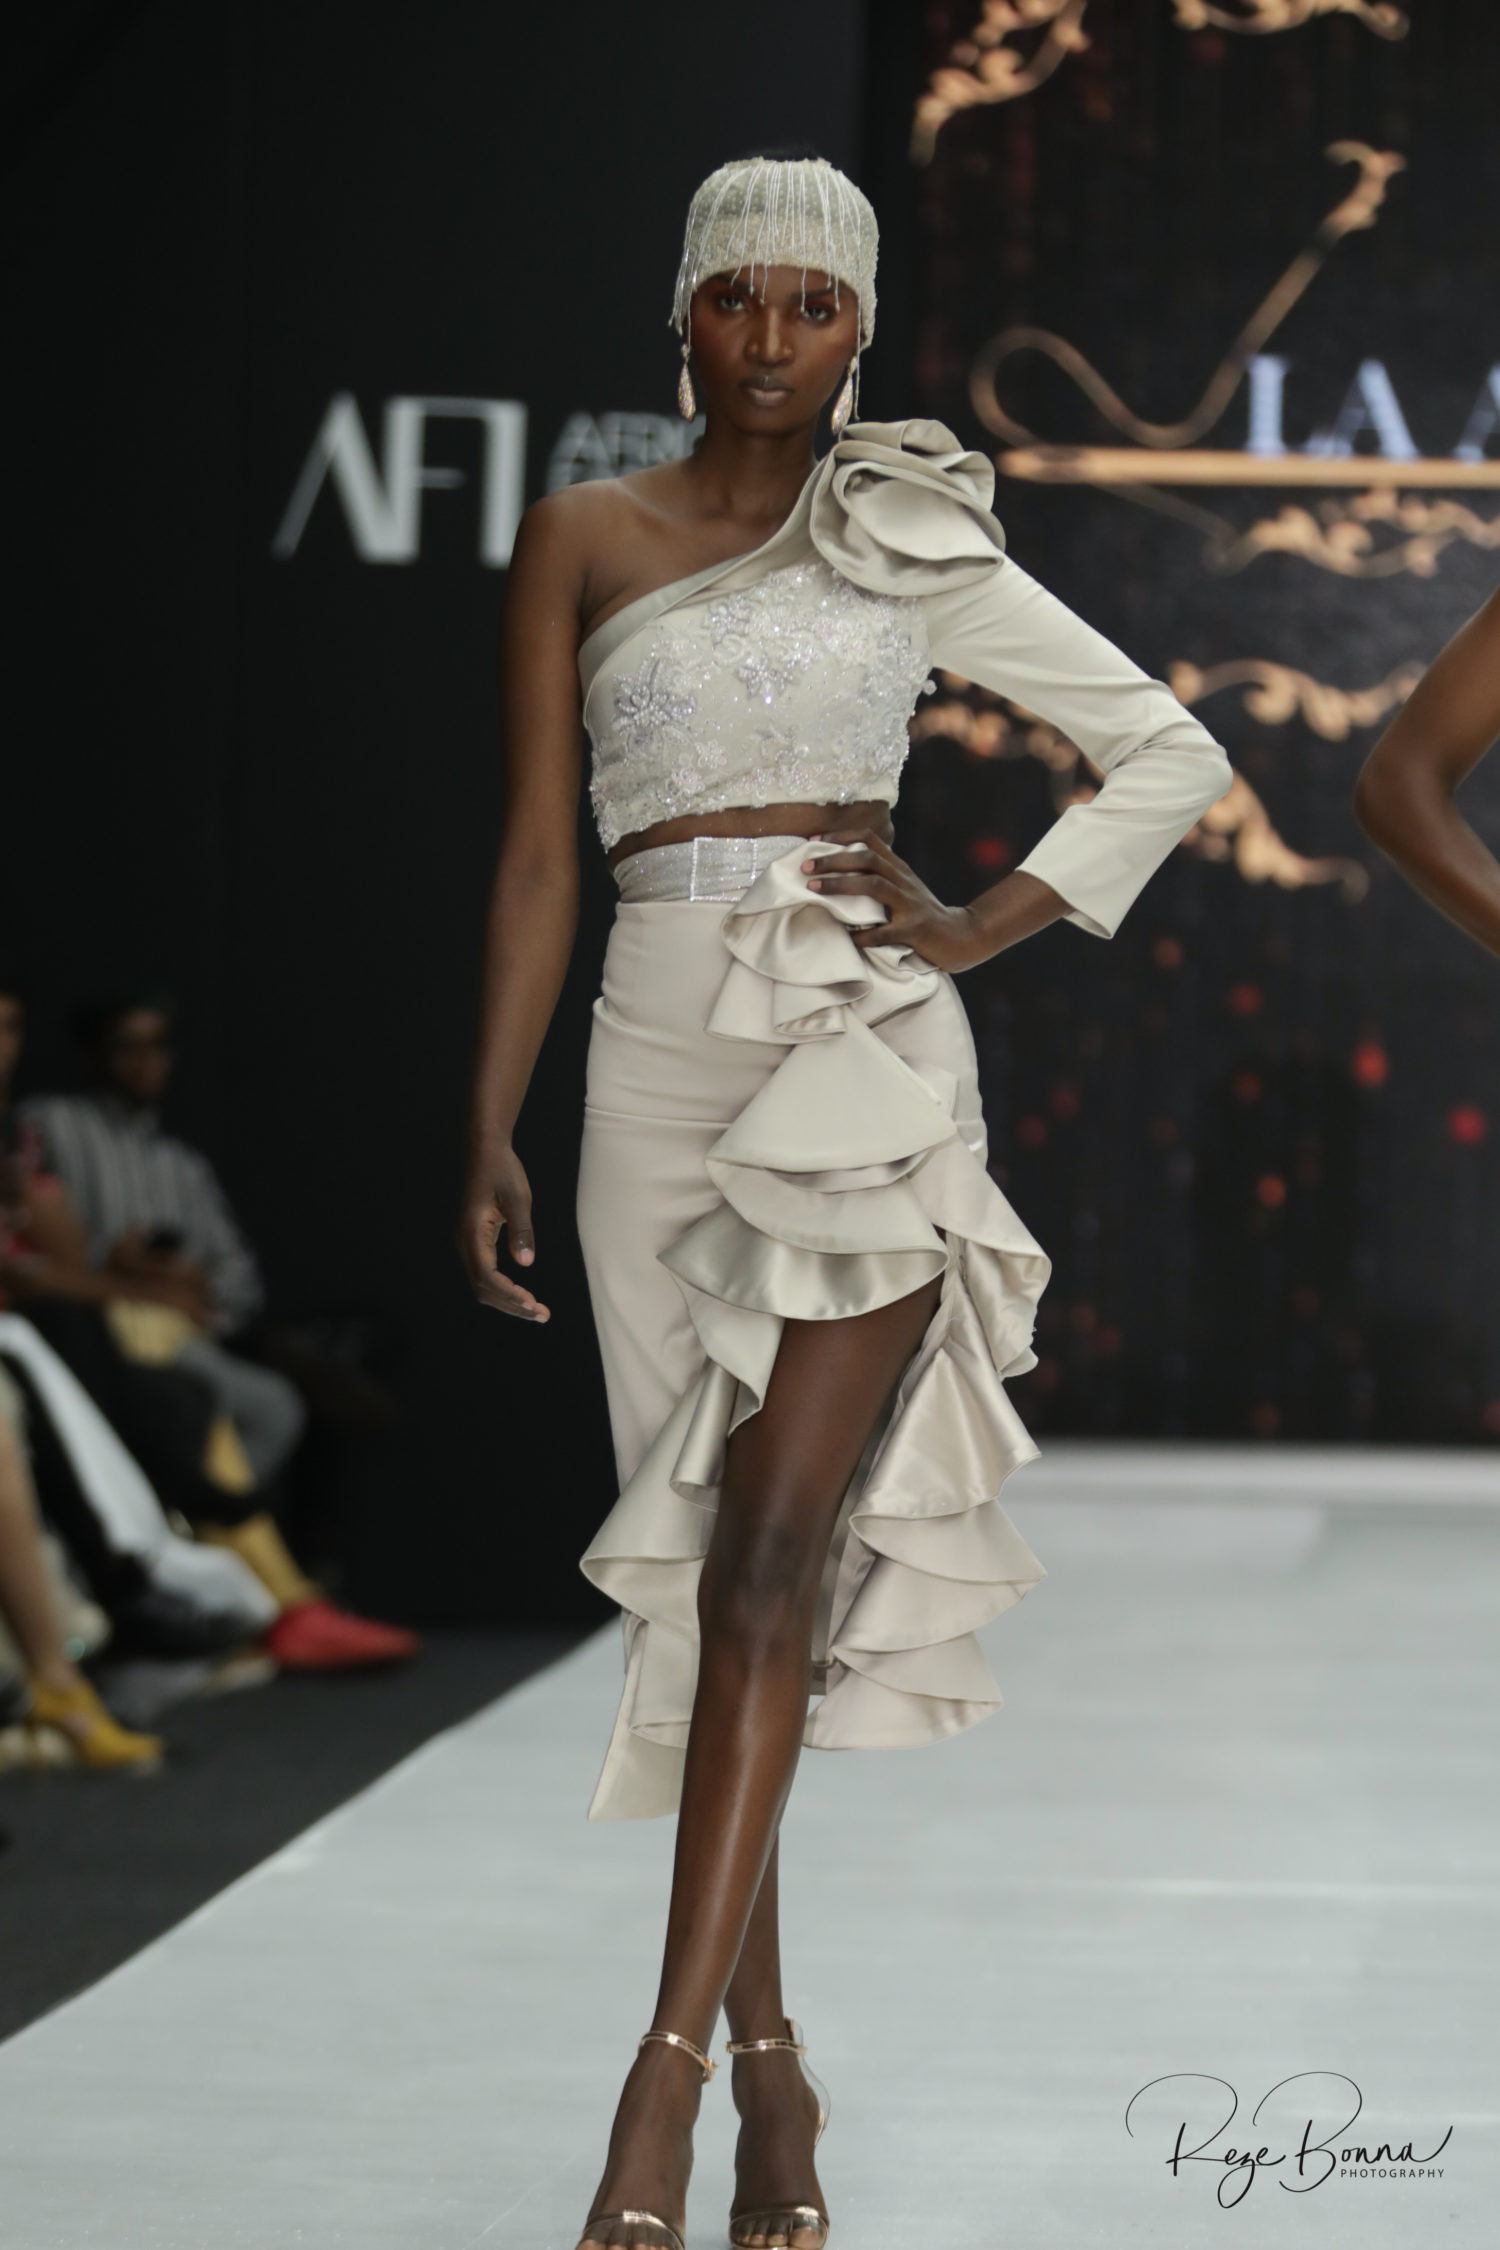 #AFICTFW19 | AFI Capetown Fashion Week L'Art Neviole